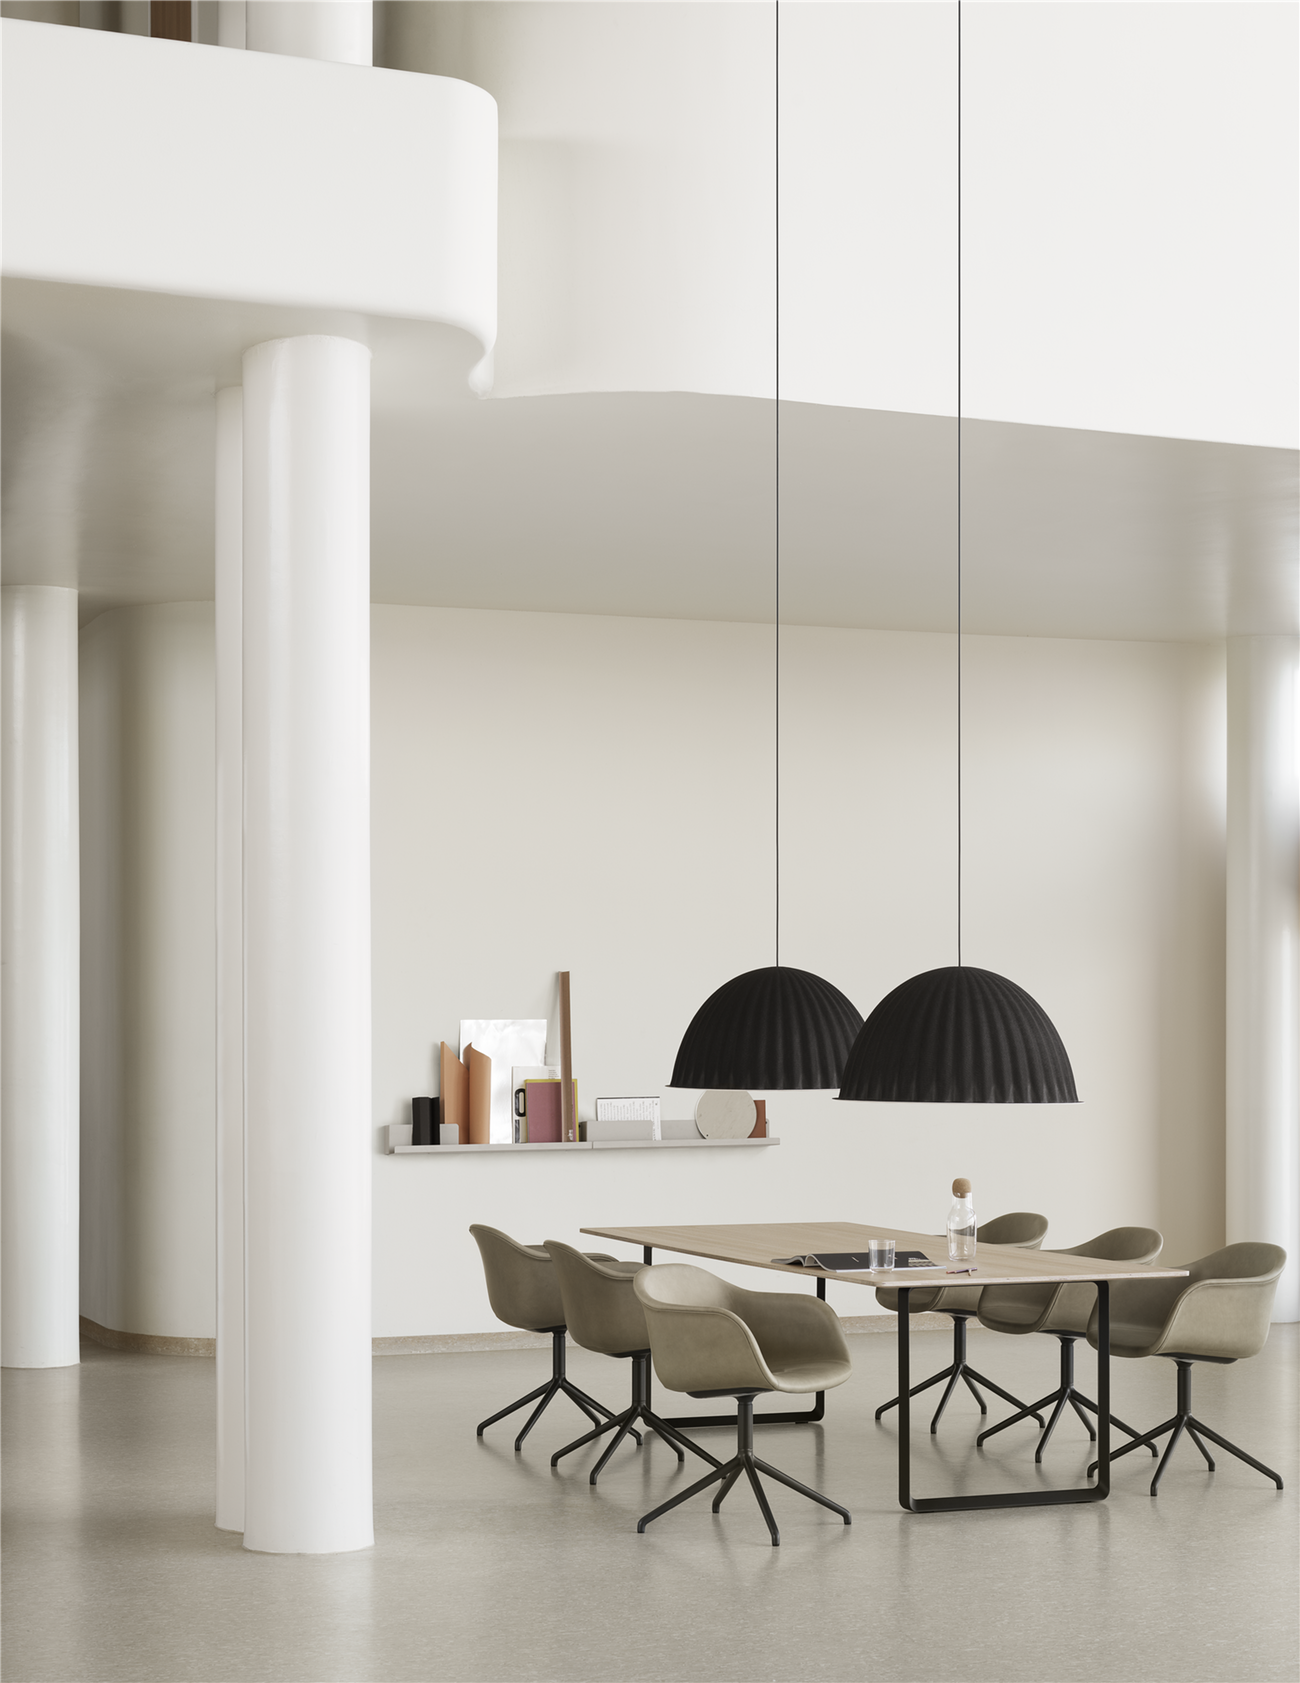 Minimal dining room with huge soudproofing pendant lights above the table.